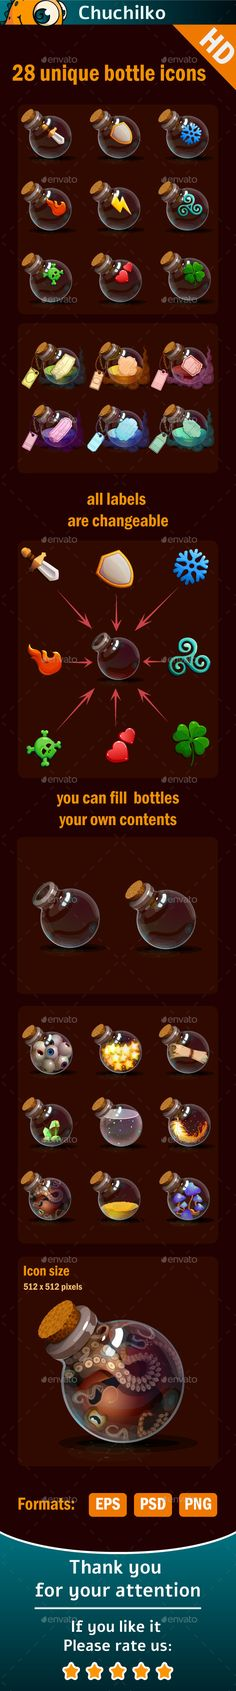 Magic bottles icons — Photoshop PSD #app #bottles • Available here → https://graphicriver.net/item/magic-bottles-icons/11613554?ref=pxcr